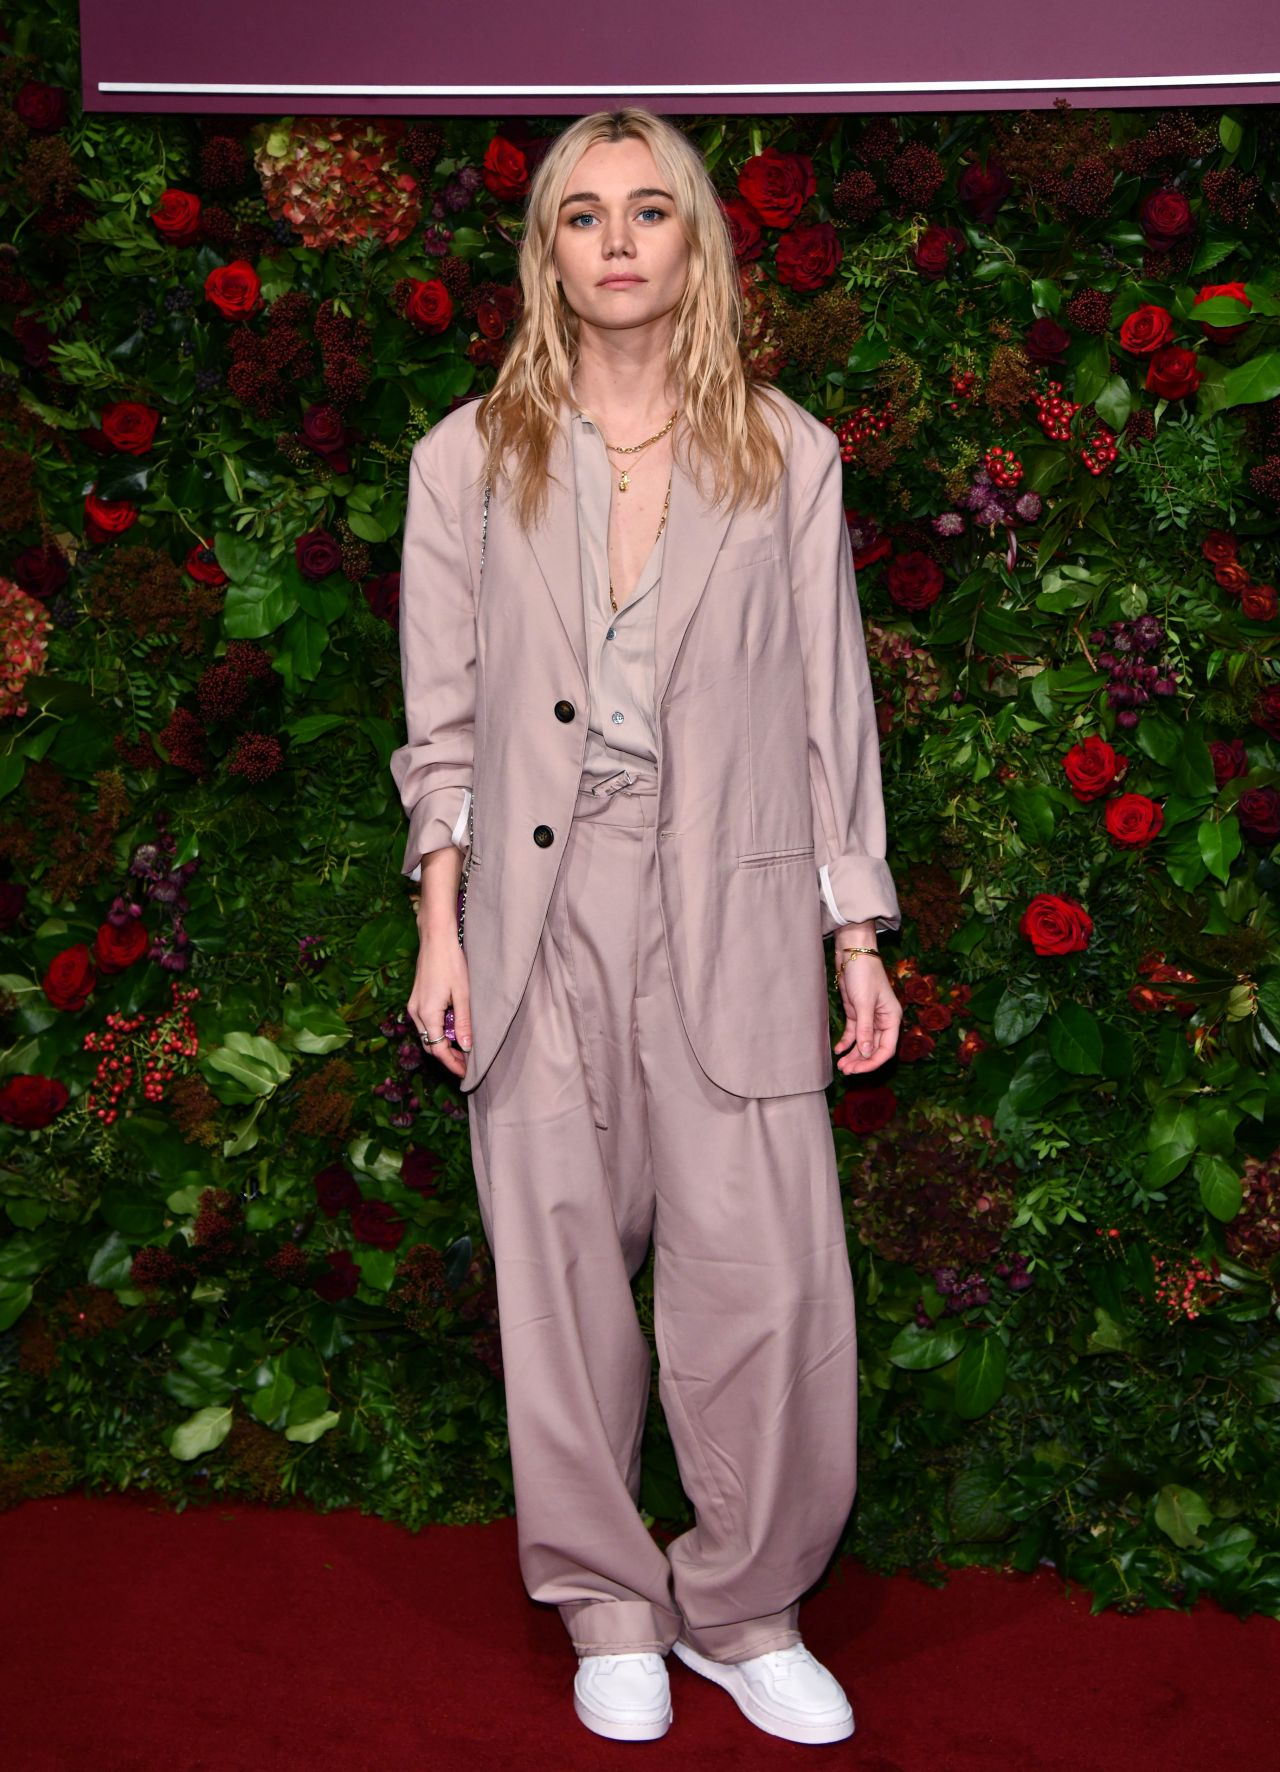 suki-waterhouse-rocks-suit-2019-evening-standard-theatre-awards-in-london